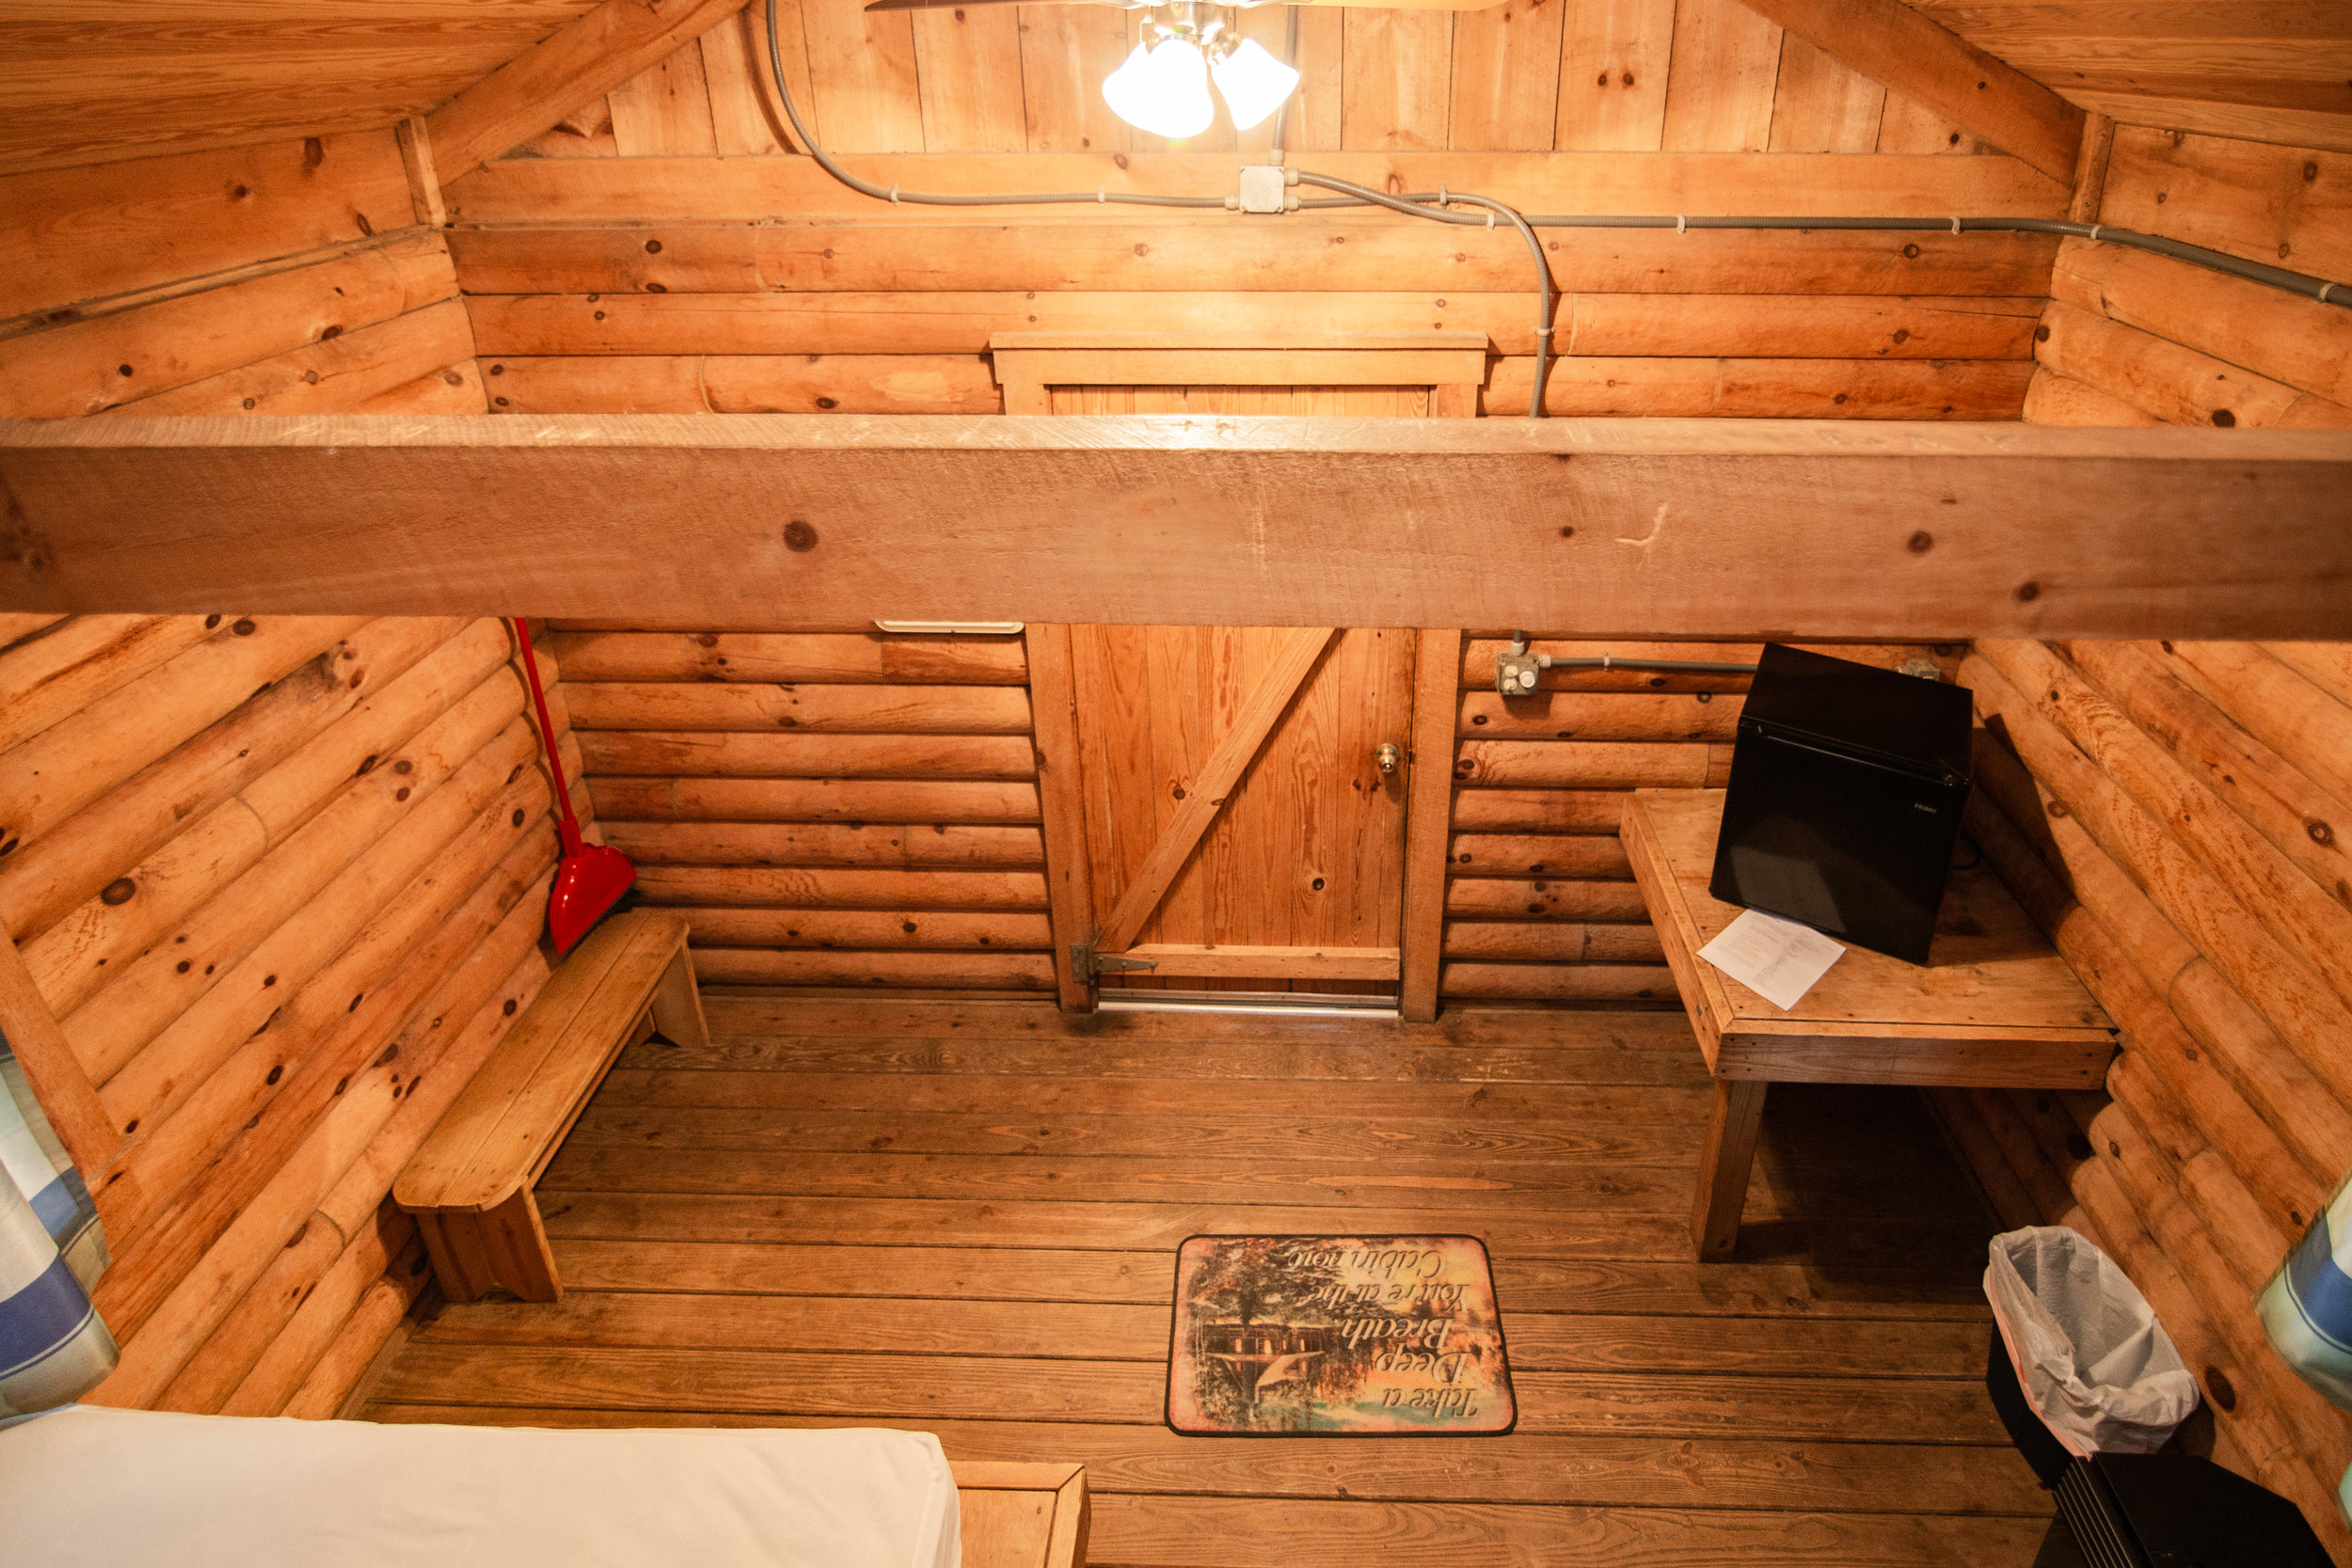 The view from the upper twin bunks of K4 is of the rest of the cabin, including the lower twin bunk and the queen size bed.